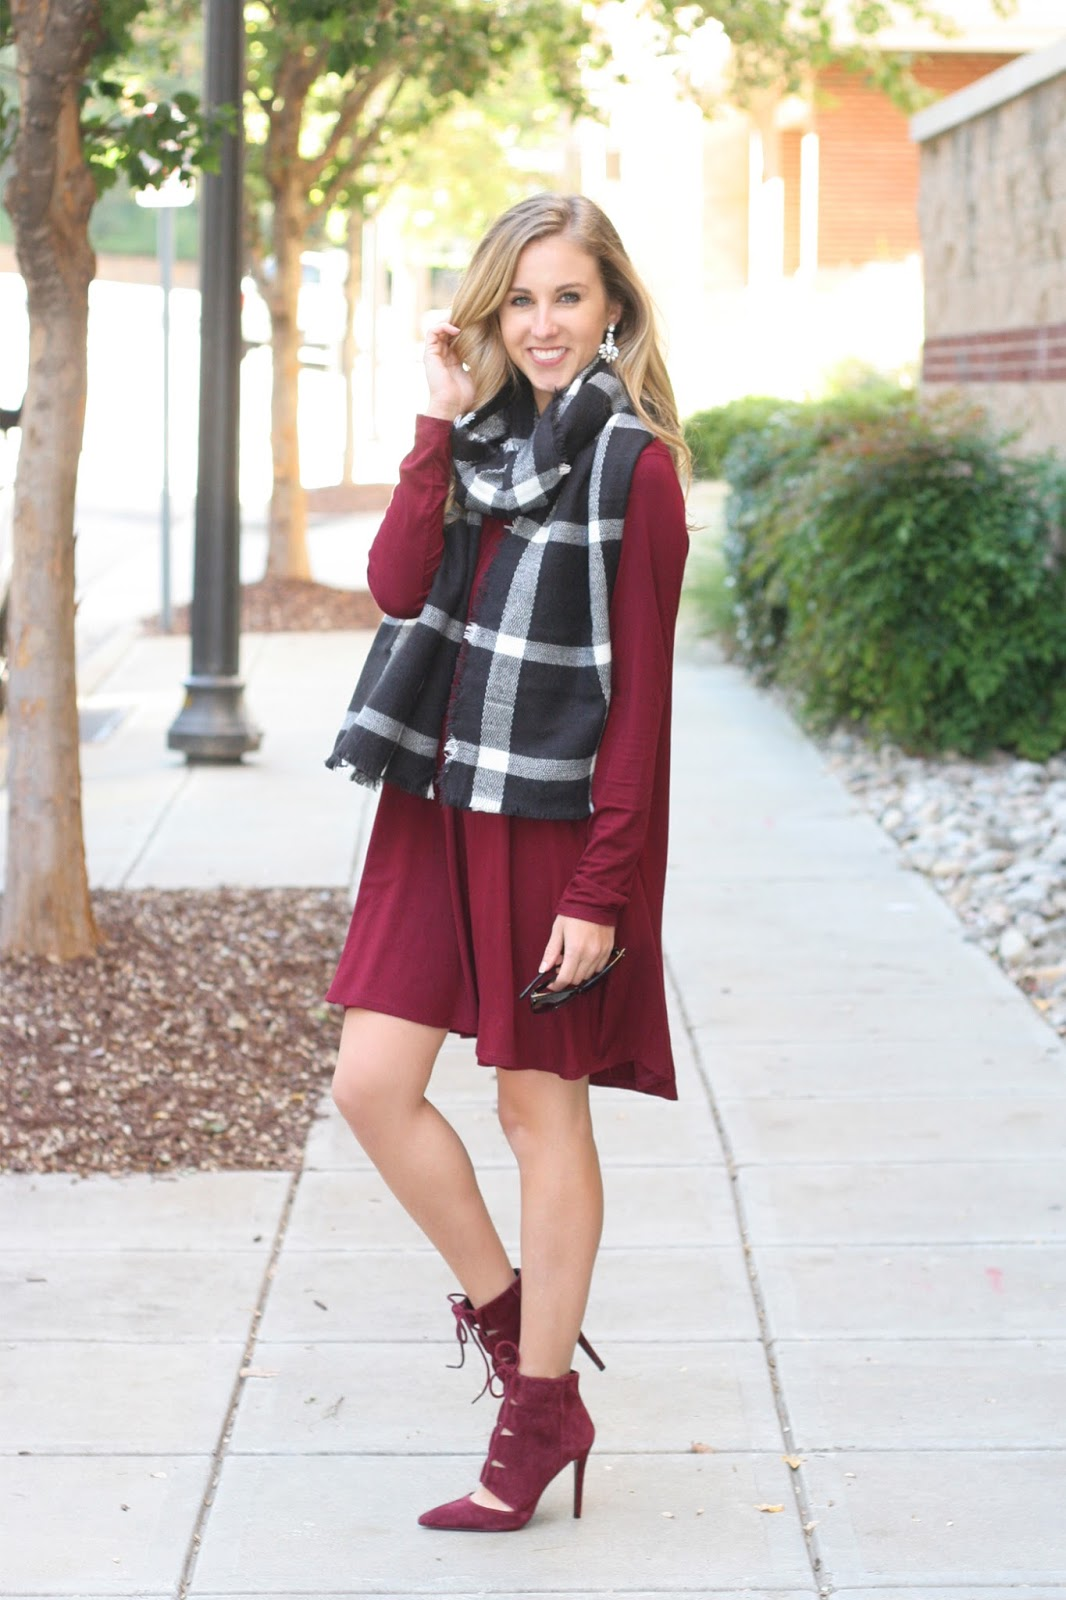 Long_Sleeve_Swing_Dress_in_Burgundy_for_Fall